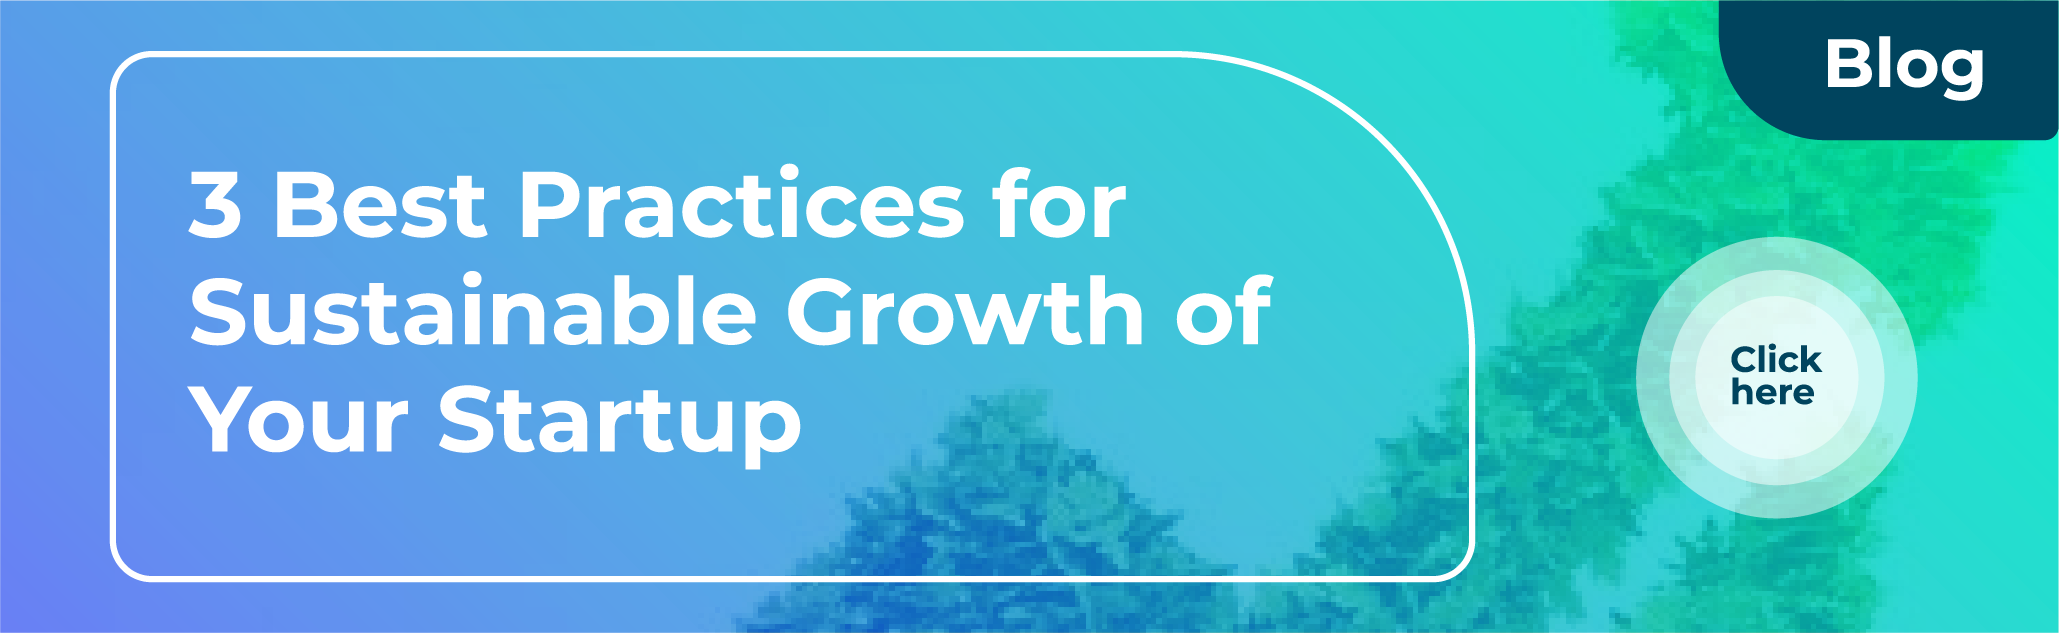 3 Best practices for sustainable growth of your startup | Botkeeper